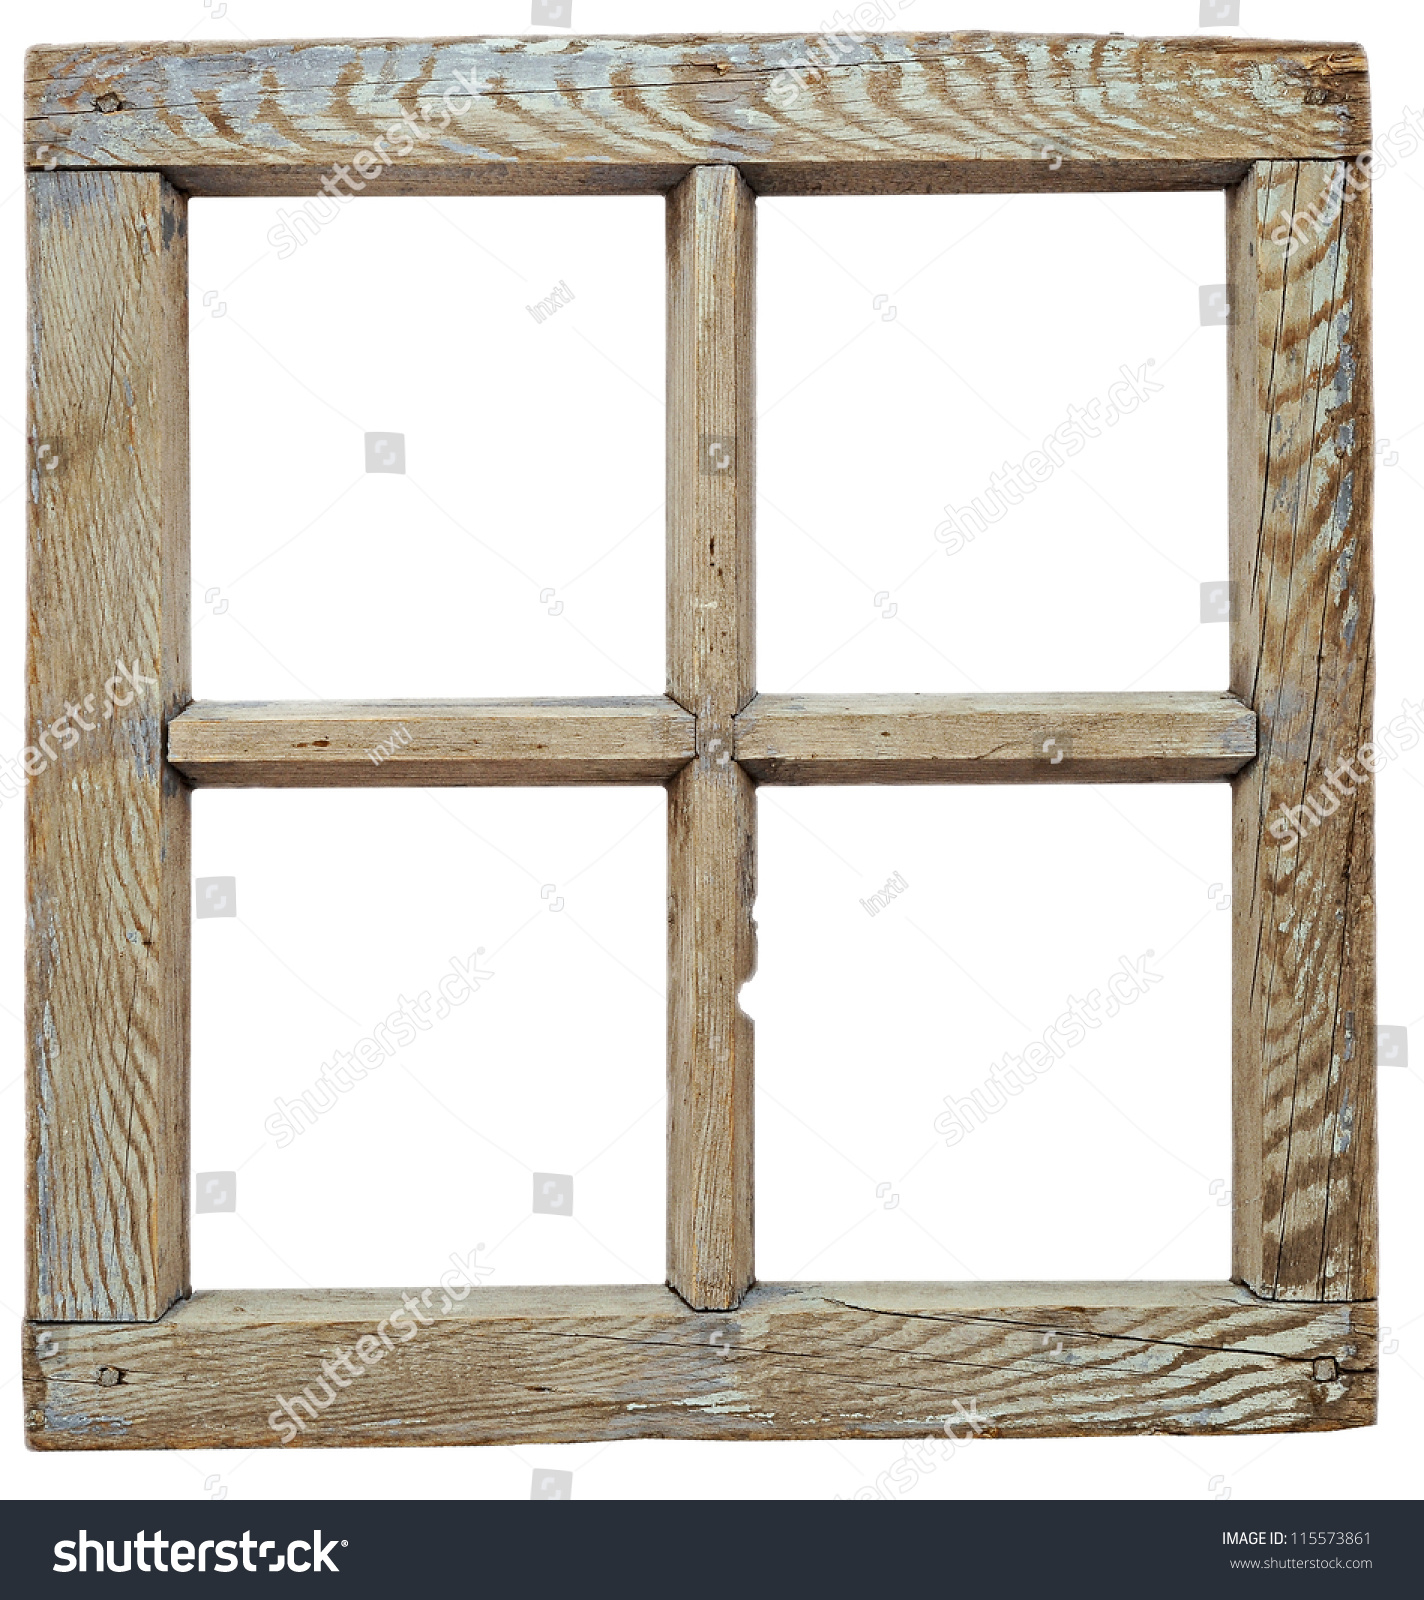 Wood Window Frames : Very old grunge wooden window frame stock photo